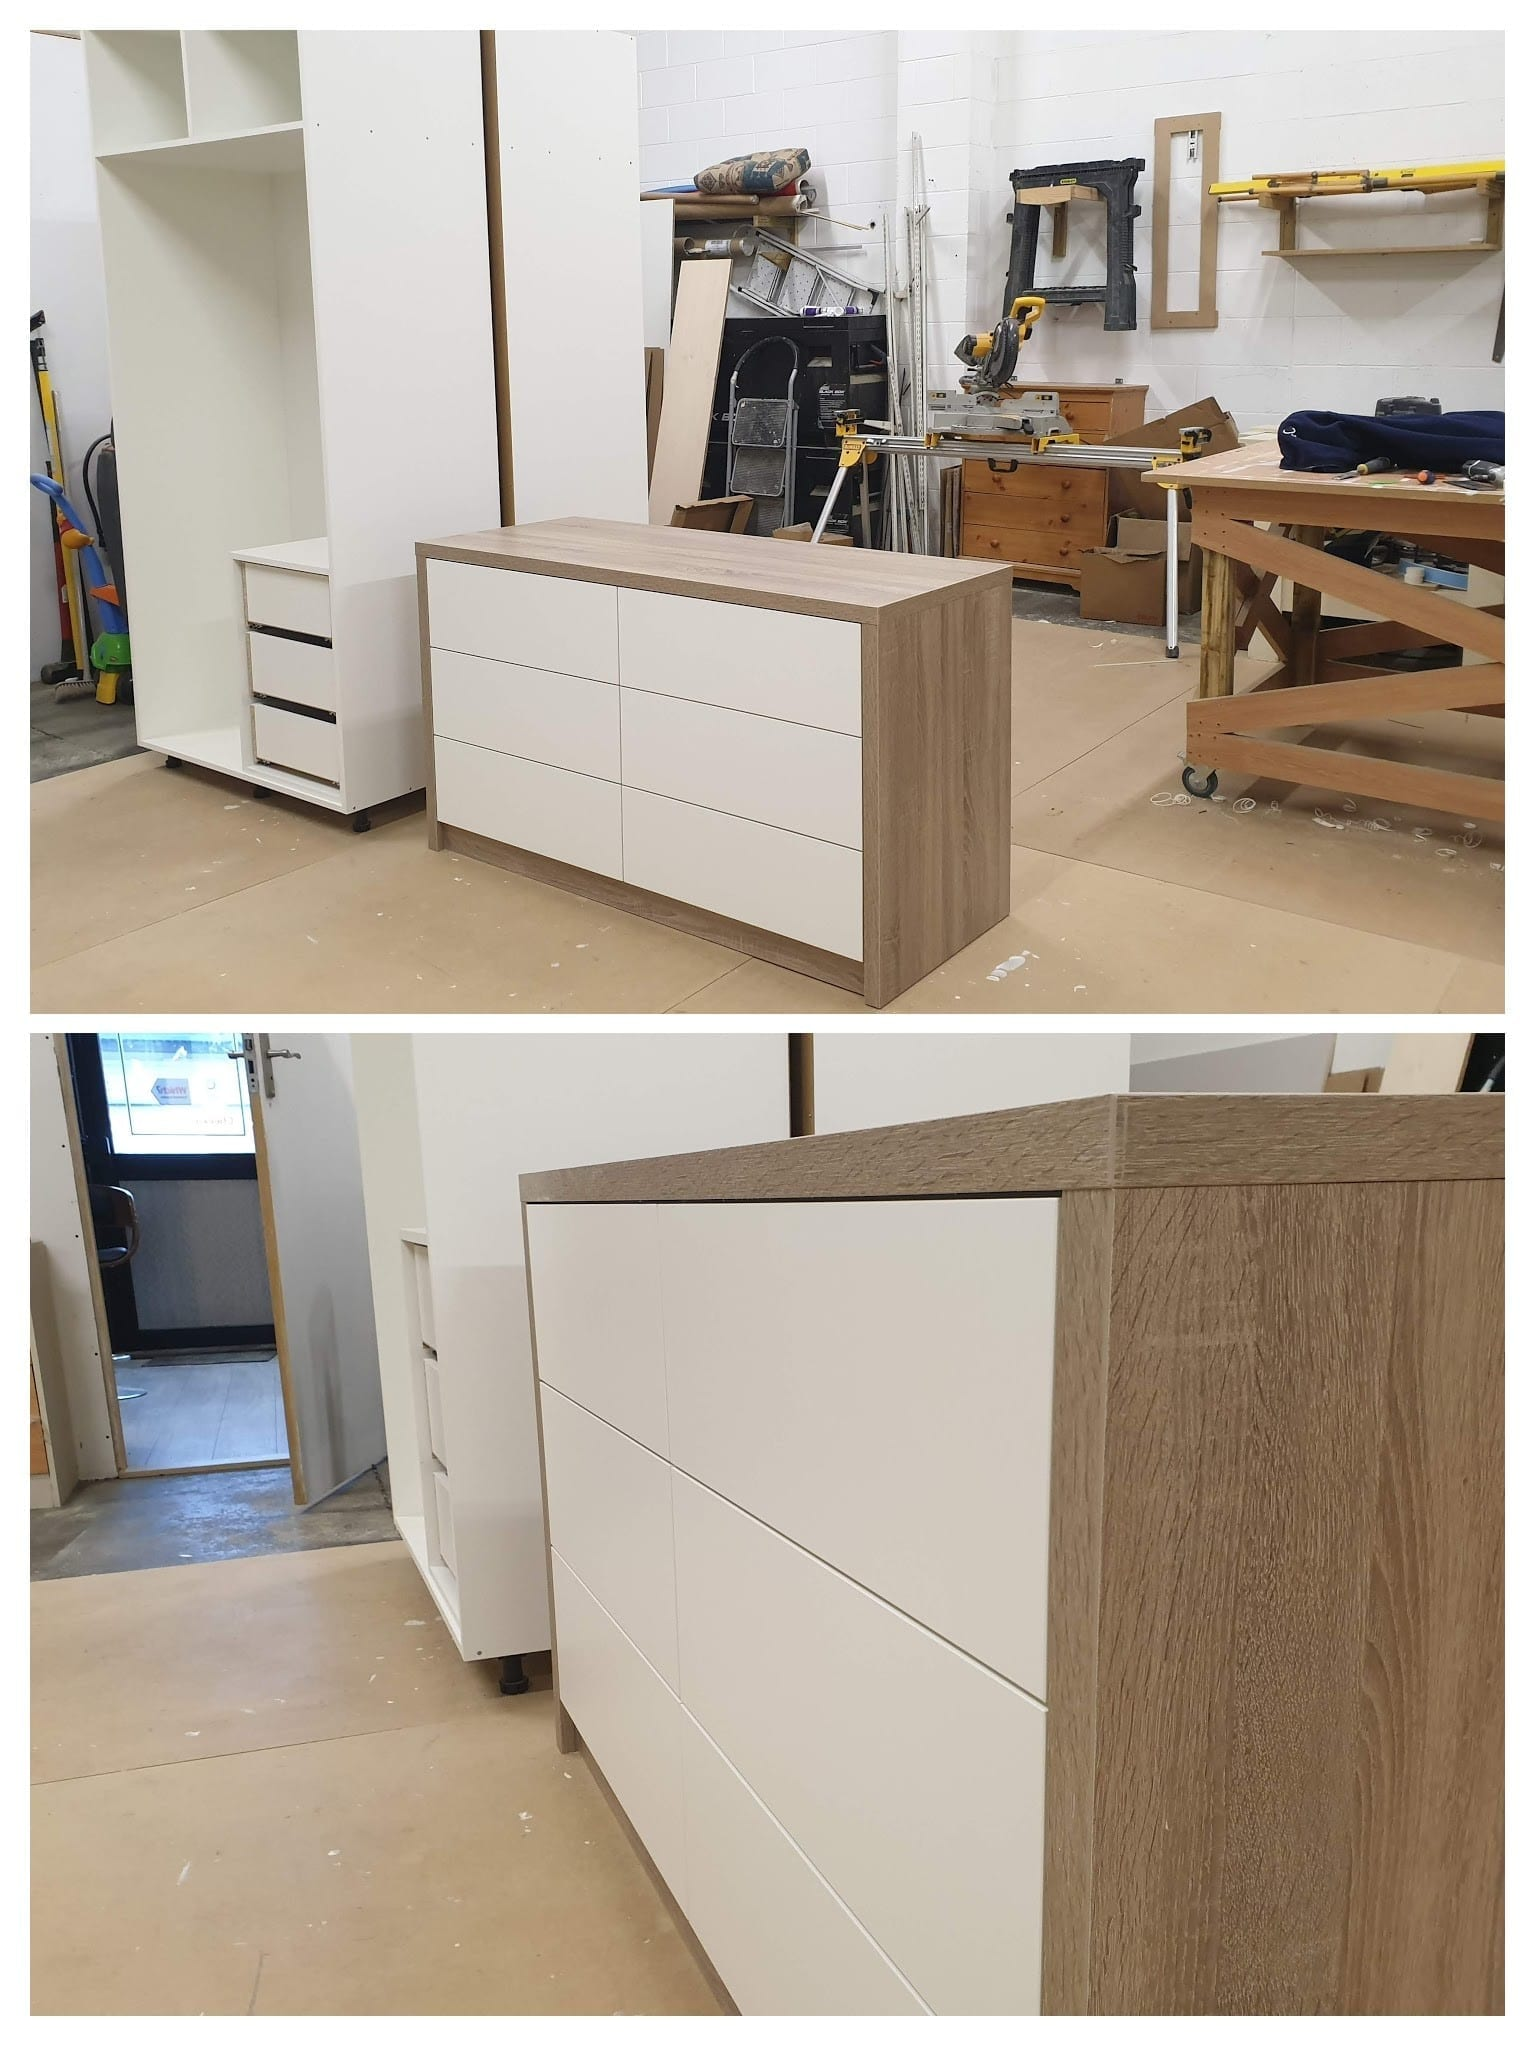 Preparation of modern style made to measure bedroom furniture in our workshop based in Whitwood, West yorkshire.